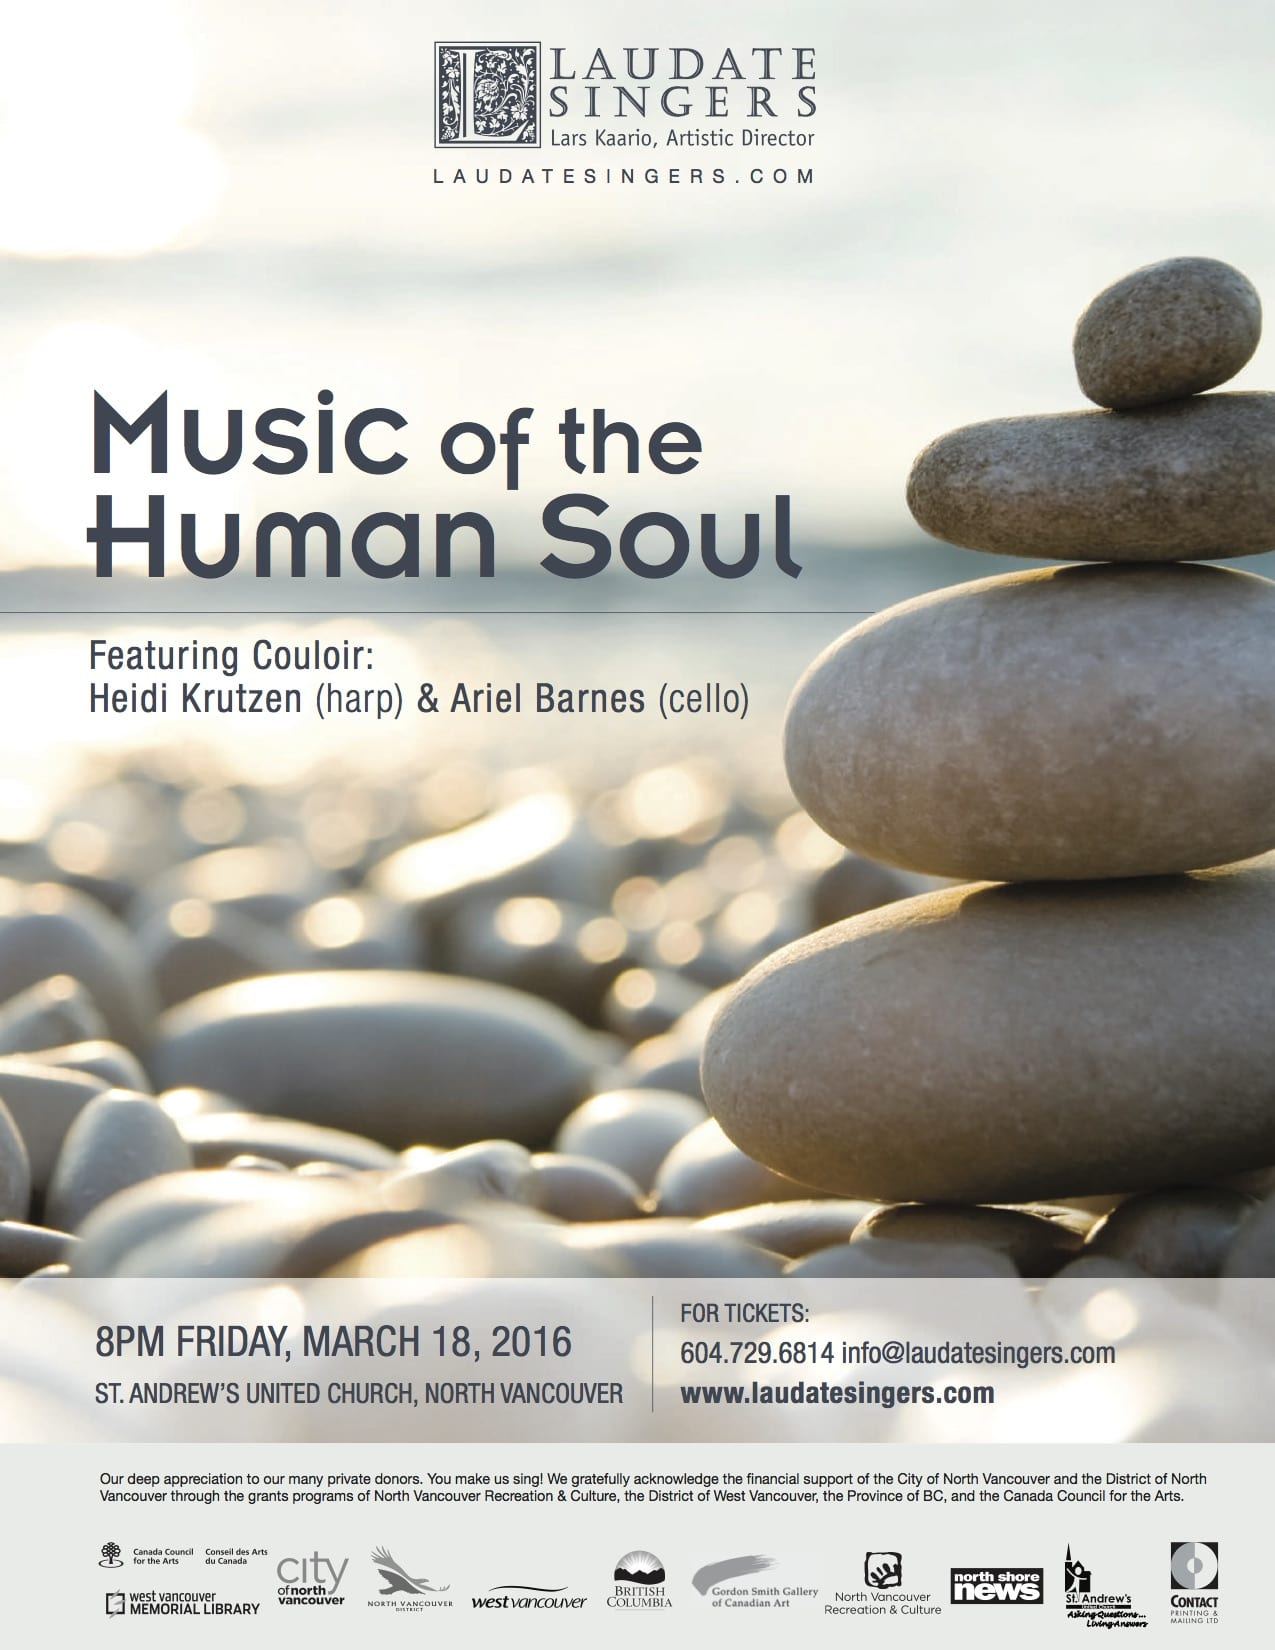 Music of the Human Soul a Musical Evening at the St Andrews United Church North Vancouver